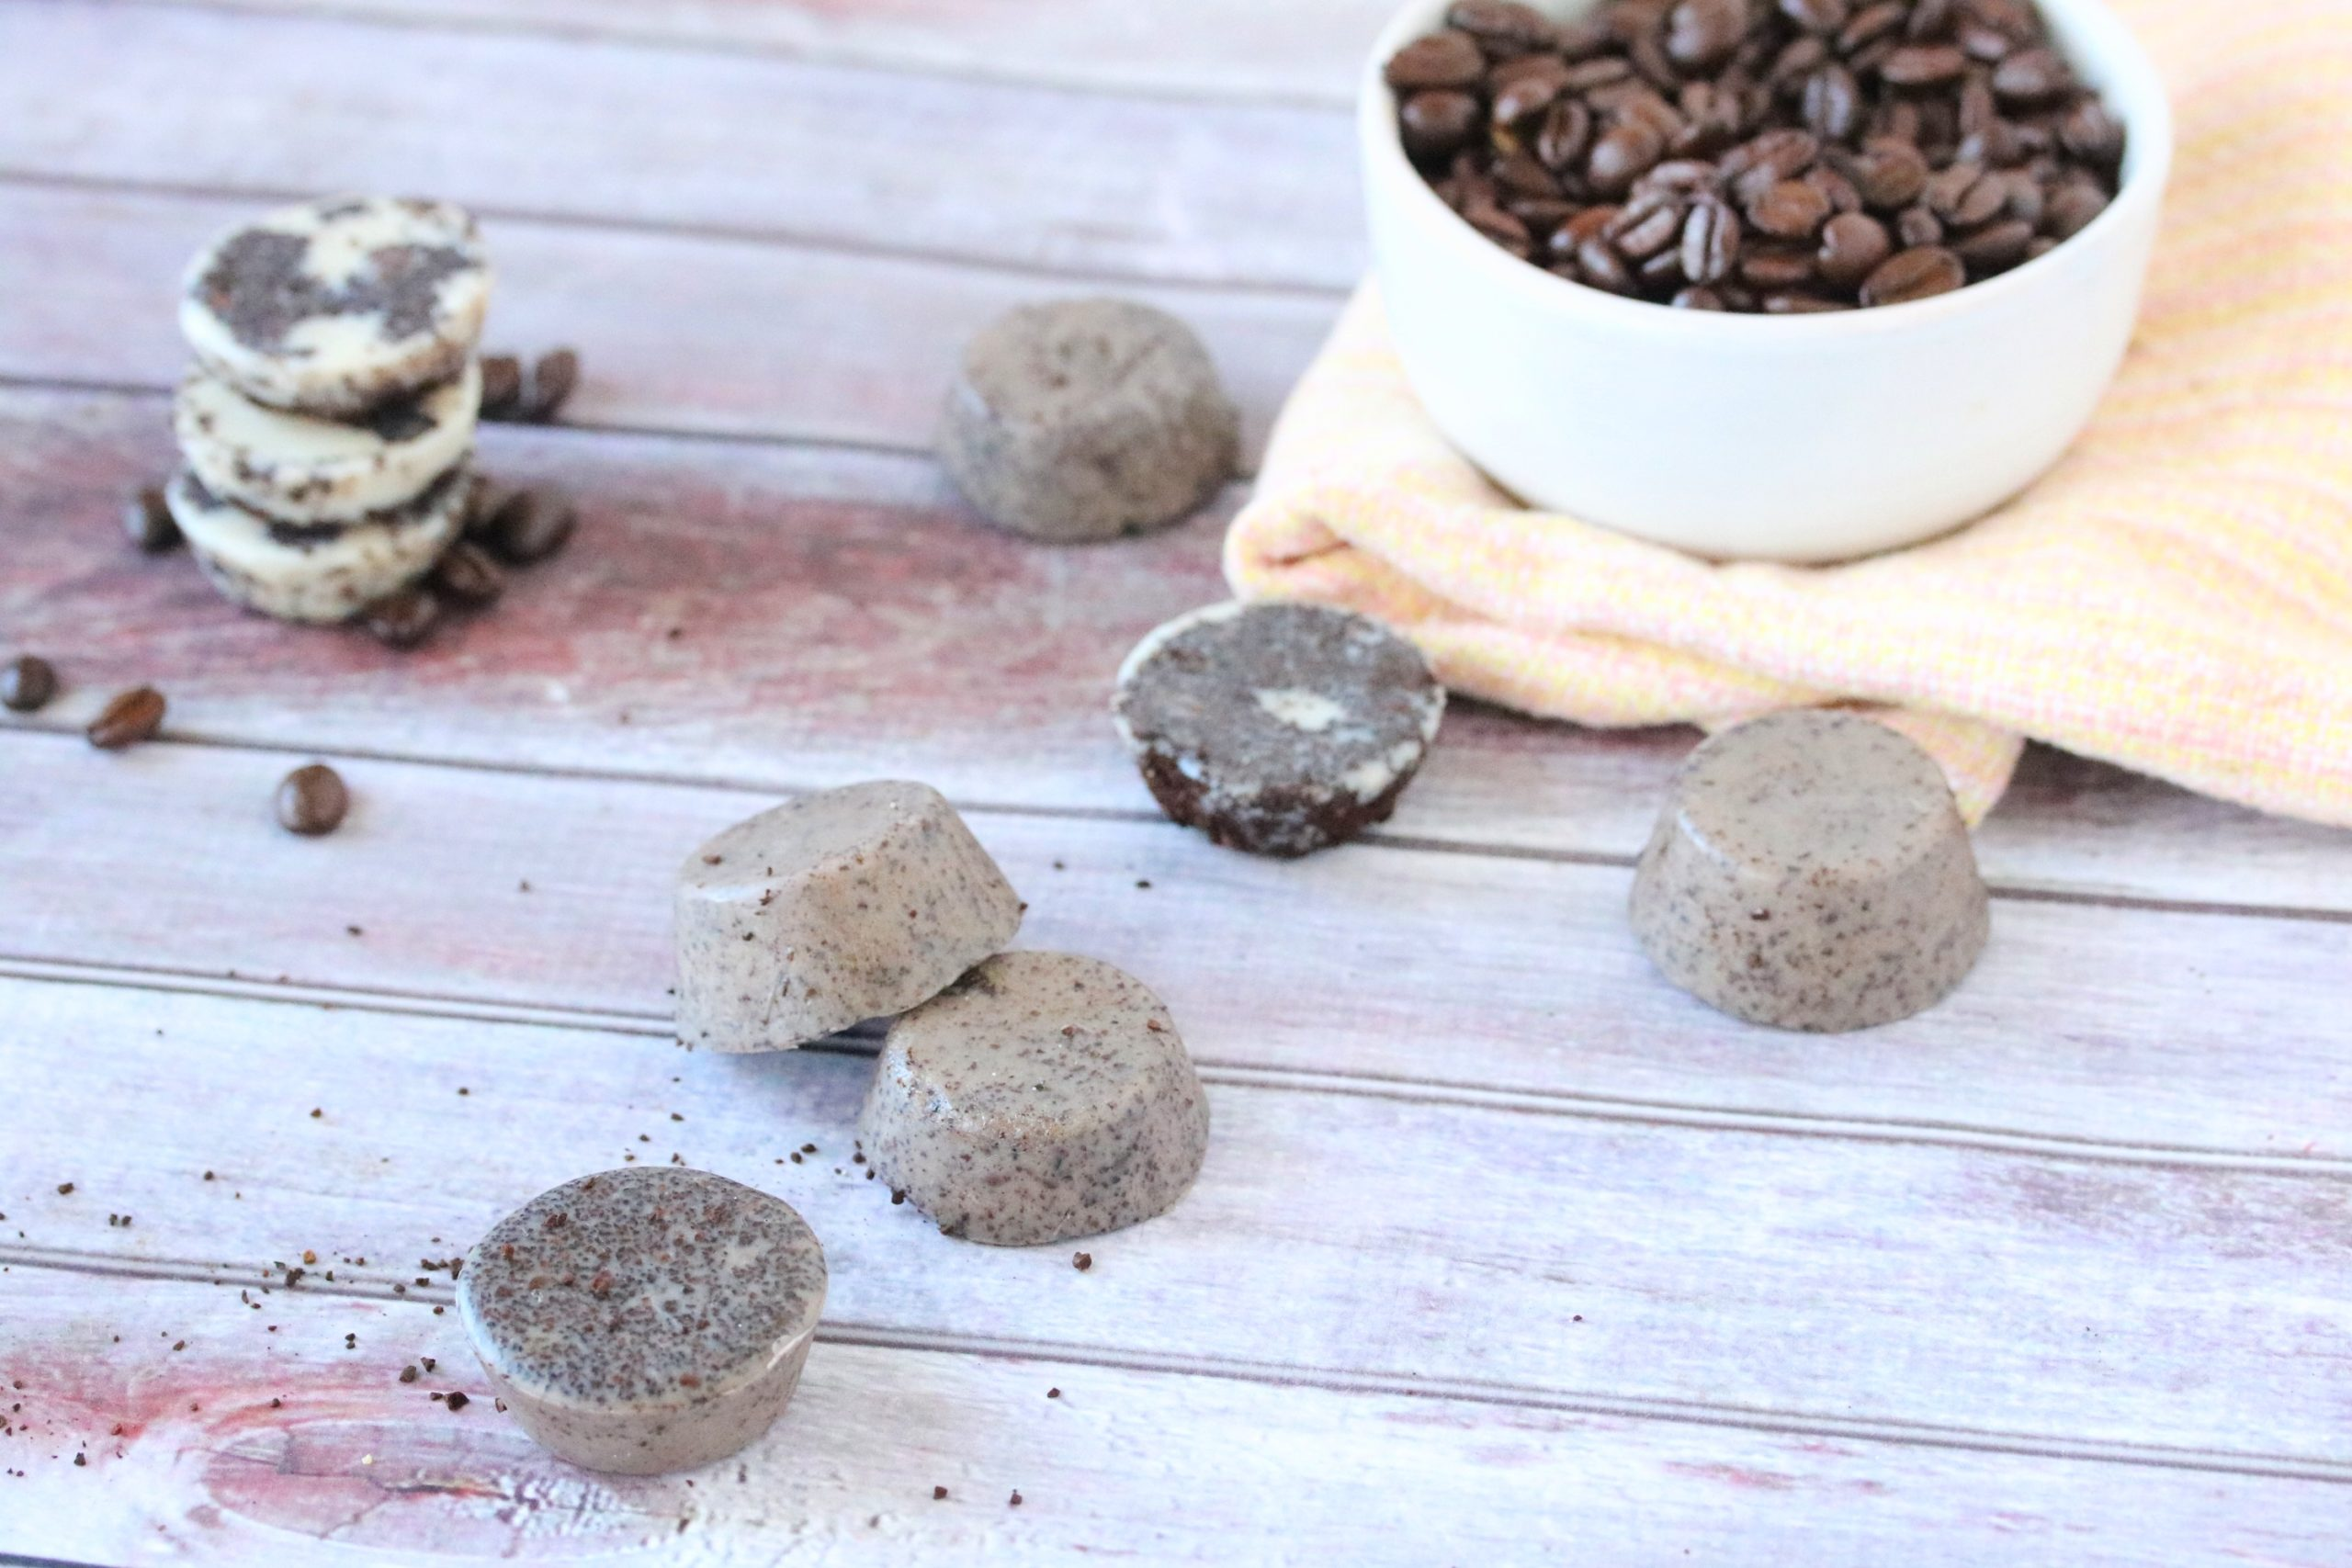 Exfoliating DIY lotion bars, three on the table with coffee grounds and bars stacked behind it with a bowl of coffee beans